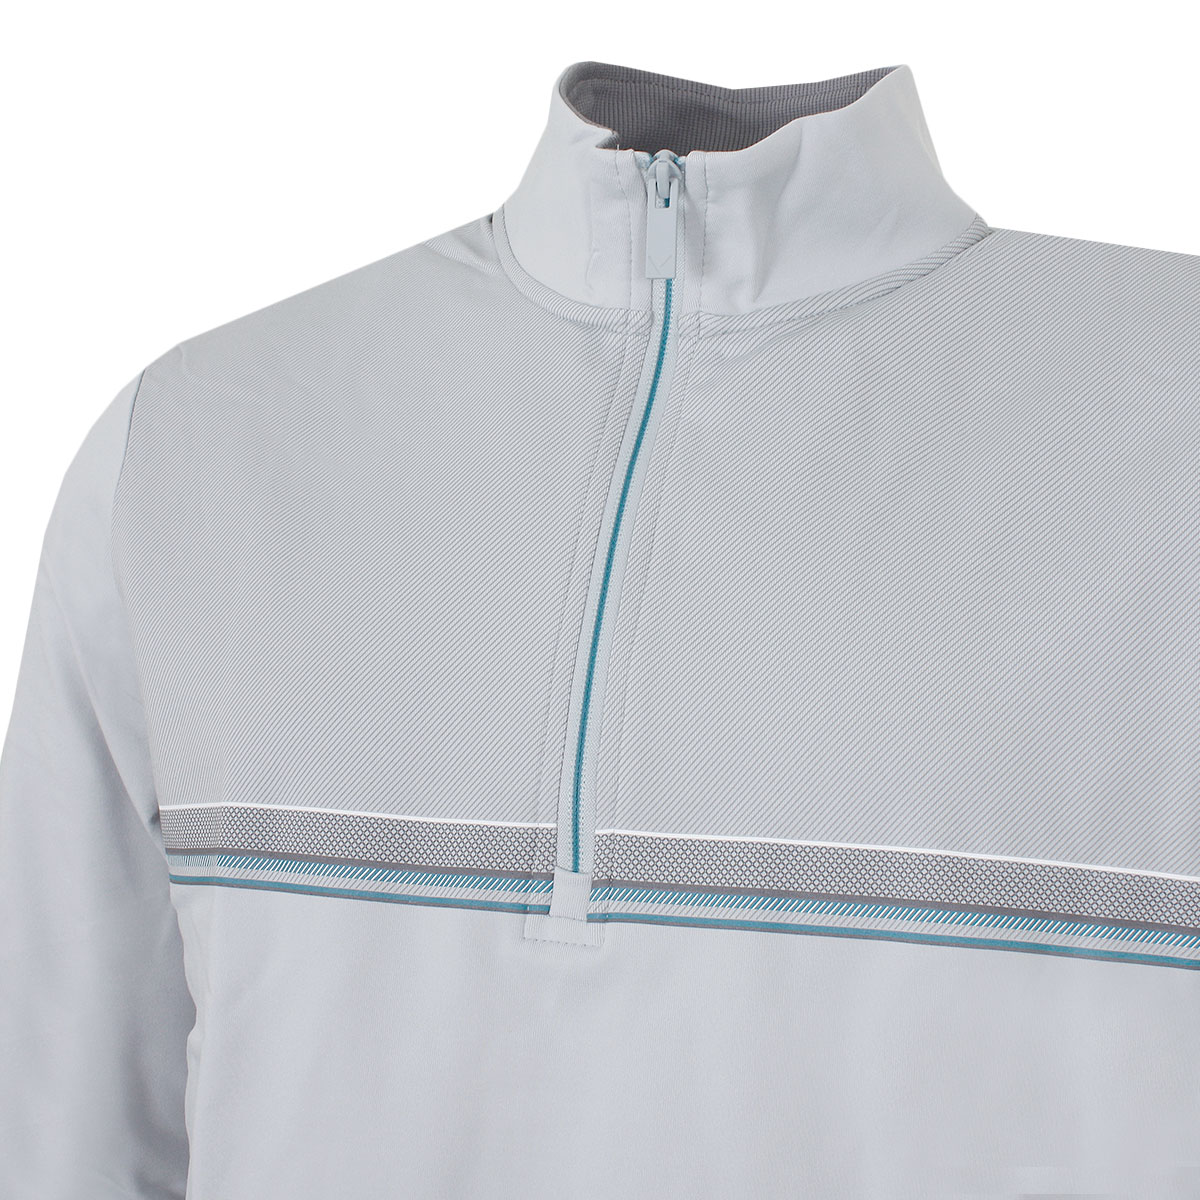 Callaway-Golf-Mens-Print-Chill-Out-Fleece-Lined-1-4-Zip-Sweater-46-OFF-RRP thumbnail 7